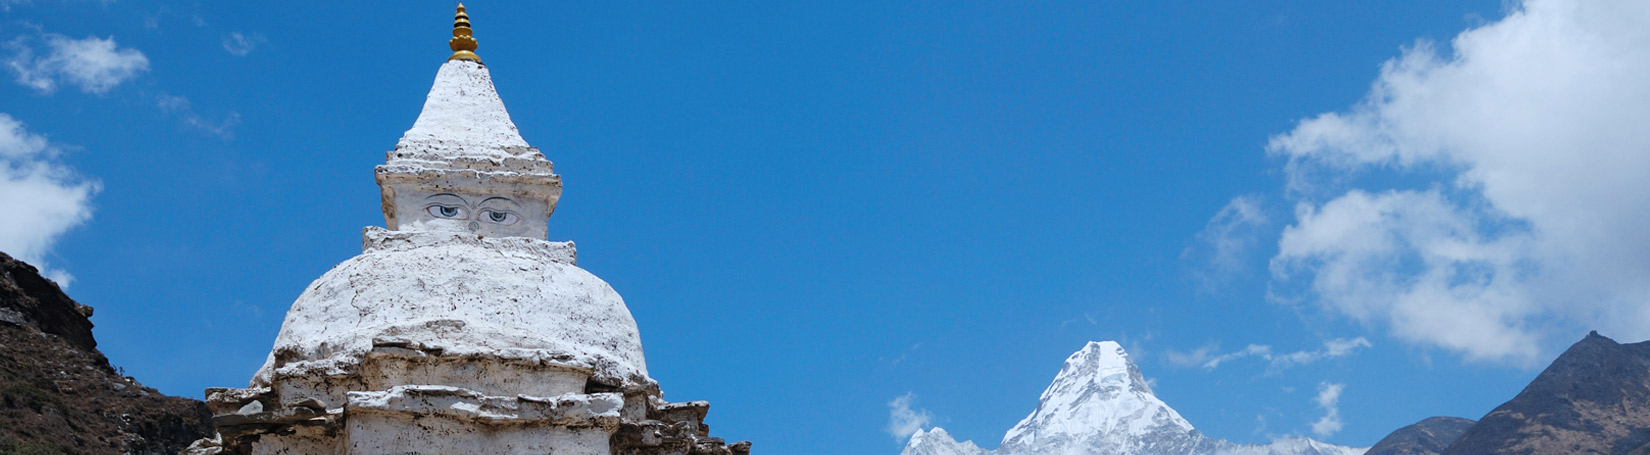 Mount Ama Dablam and Stupa